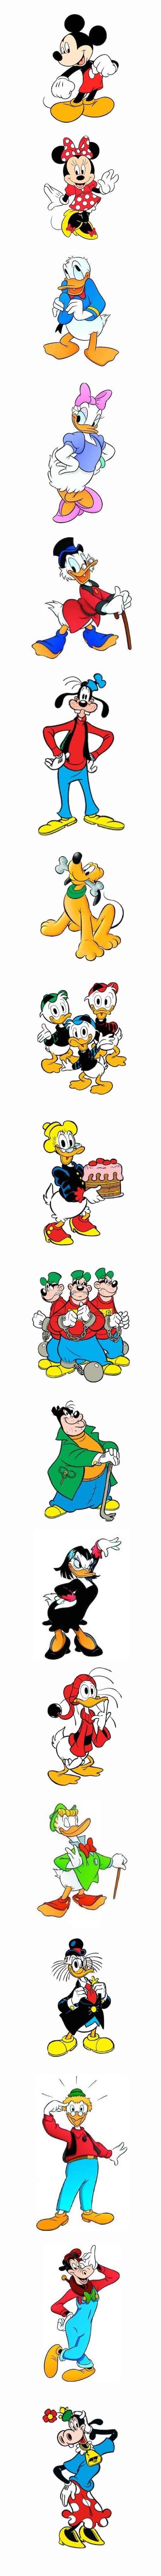 Walt Disney: Topolino, Paperino, Paperina, Topolina, Qui Quo Qua, Paperoga, Zio Paperone, Banda Bassotti, Archimede, Pluto, Pippo, ecc. (Mickey Mouse, Minnie, Goofy, Pluto, Donald Duck, Uncle Scrooge, Daisy Duck & Co.):